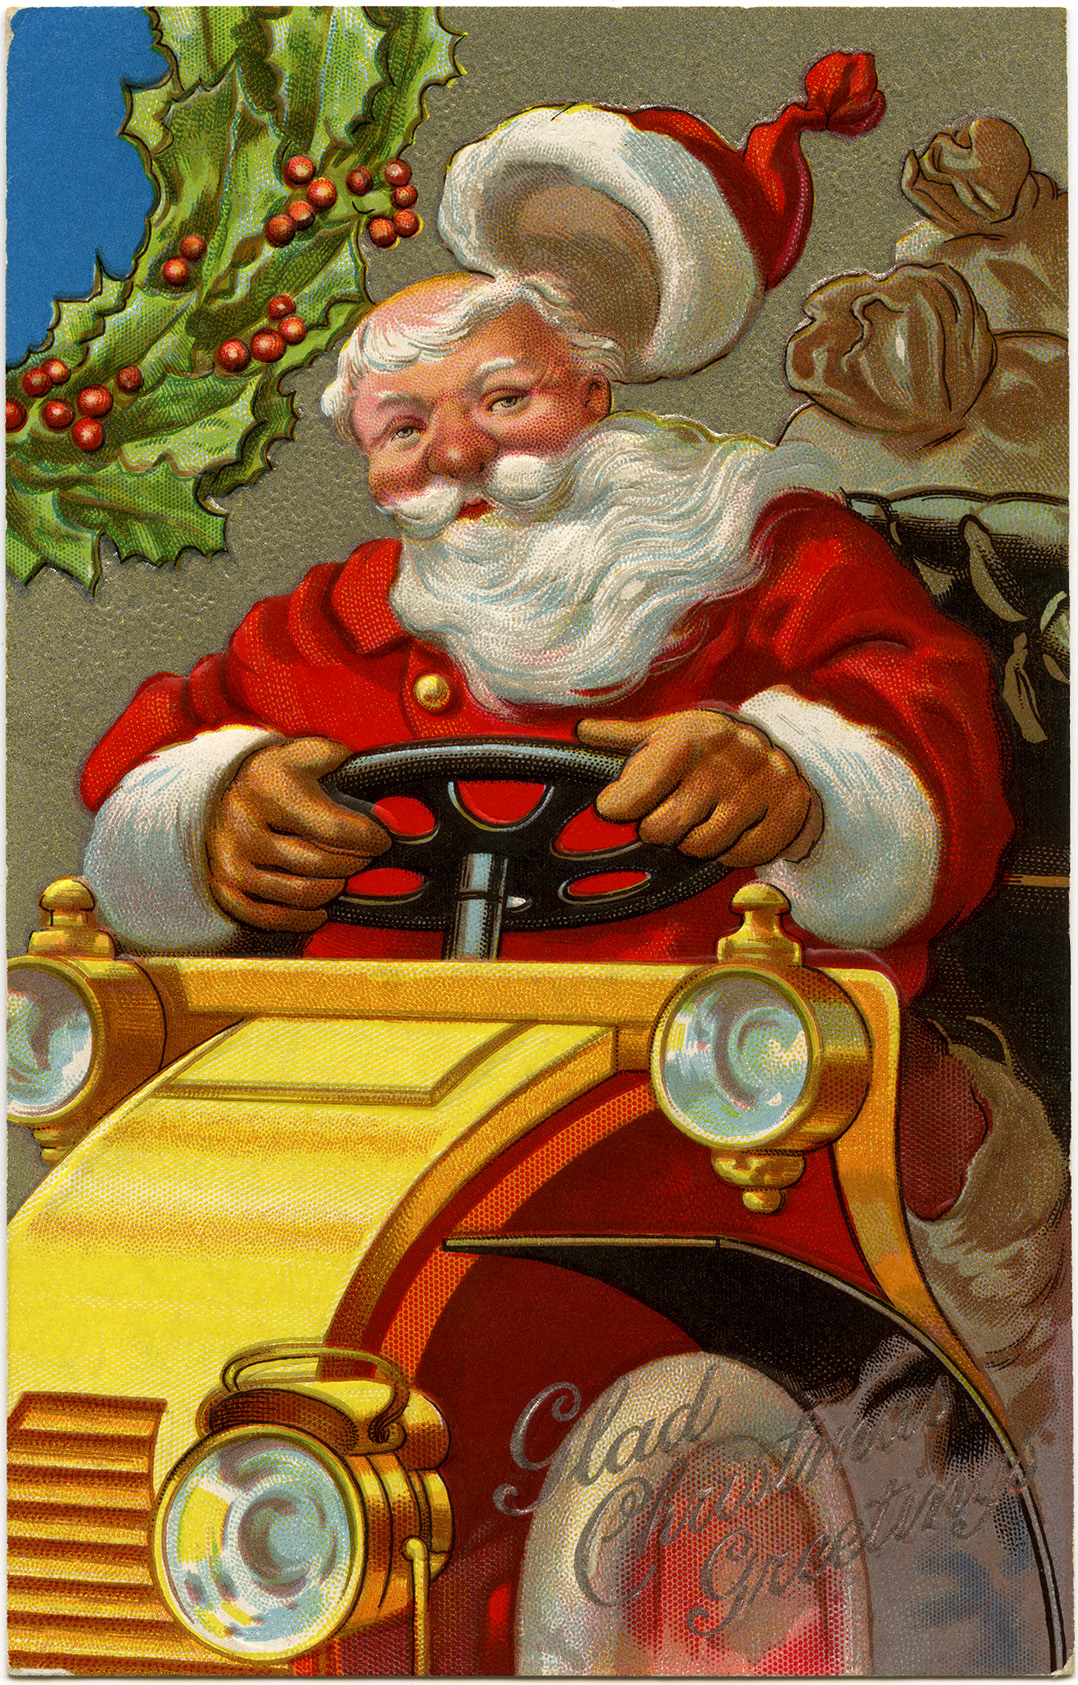 vintage postcard printable, jolly santa illustration, vintage Christmas card, santa driving car clipart, antique Christmas postcard graphic